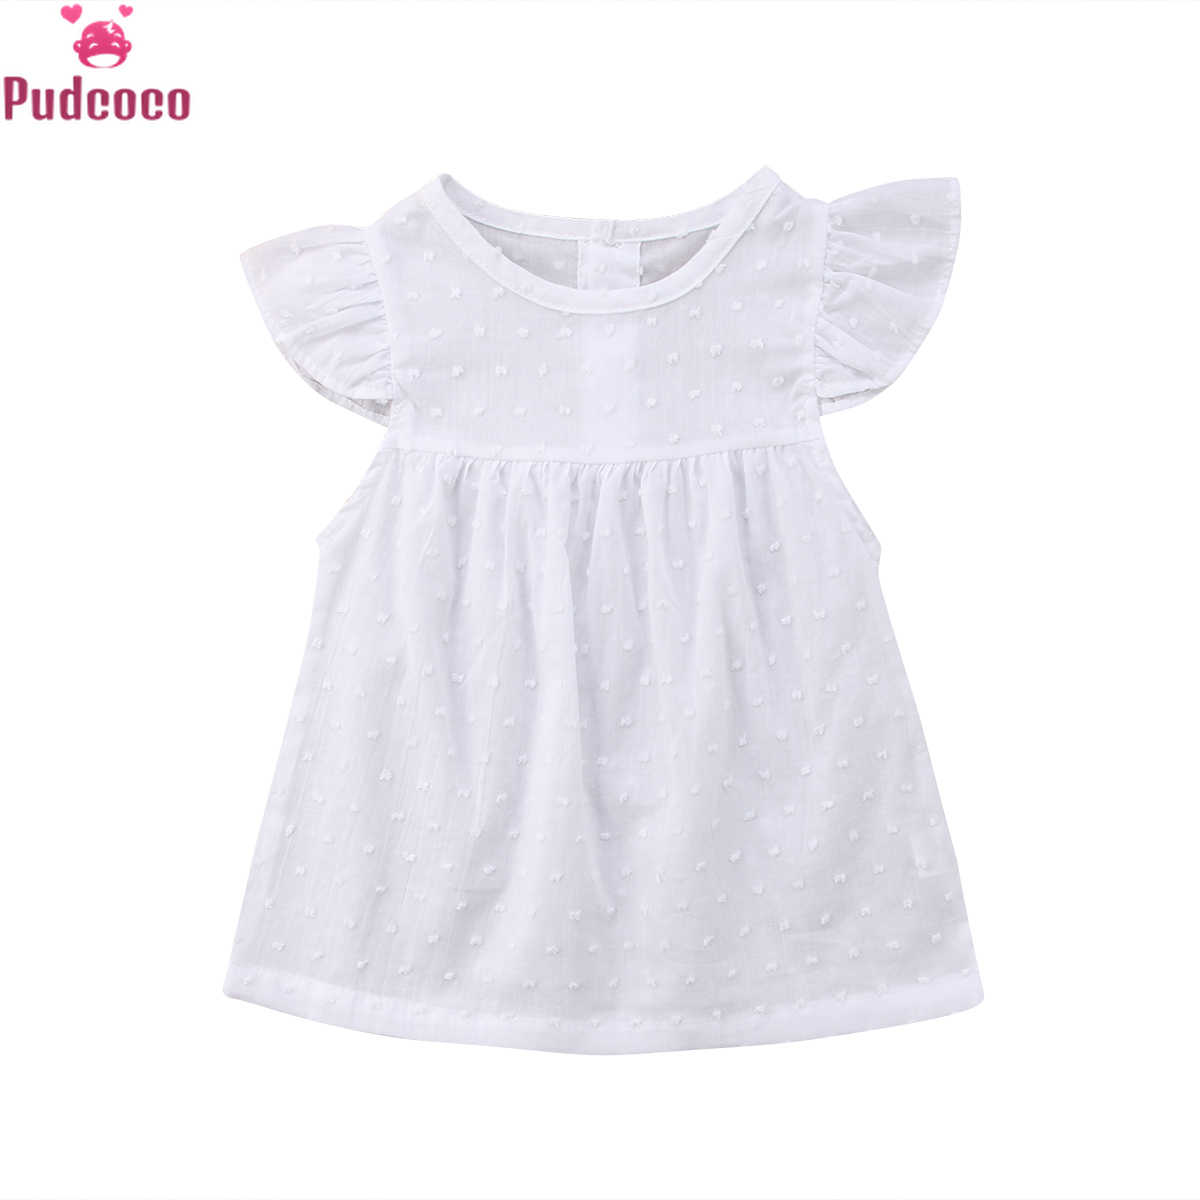 Cute White Tulle Princess Dress Baby Girl Clothes Toddler Infant Short Sleeves Tutu Dresses Party Birthday Holiday Dress